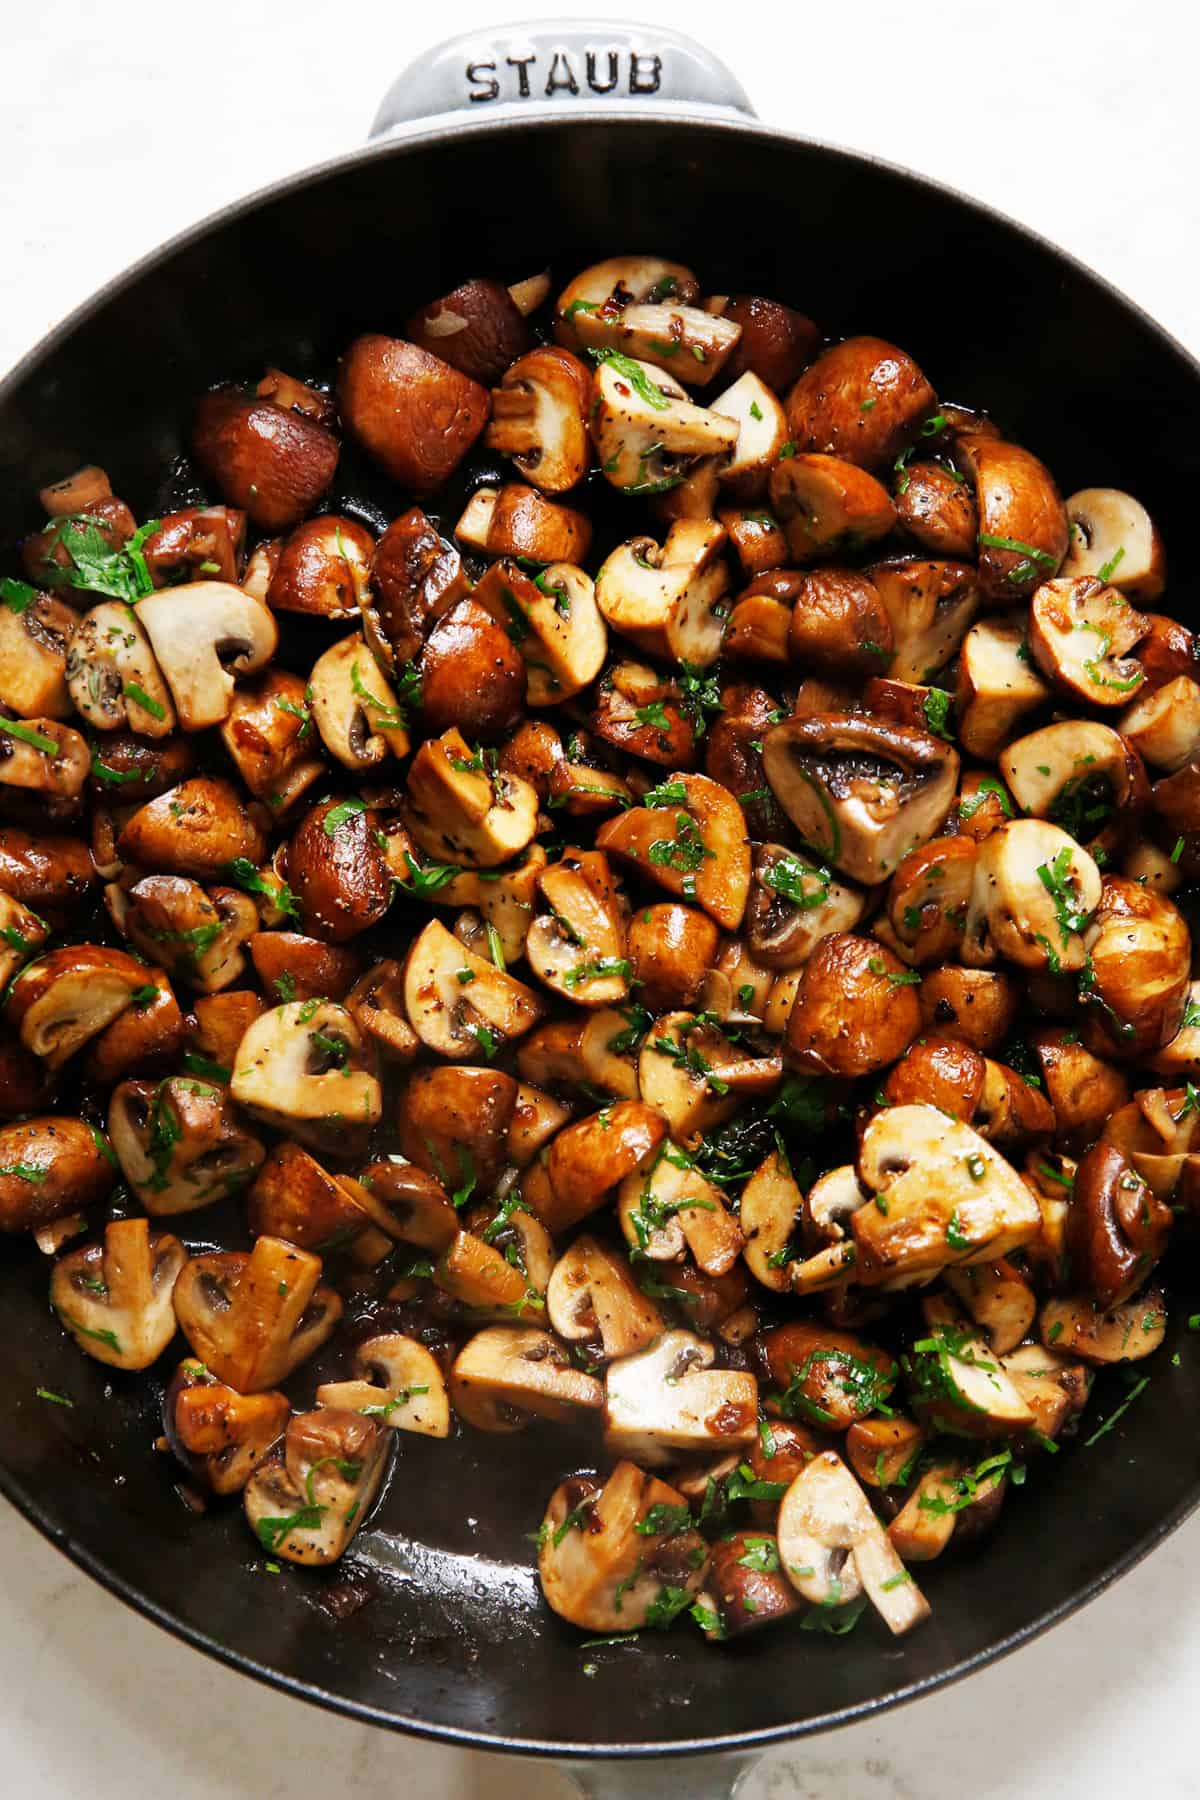 Garlic mushrooms with tons of herbs in a saute pan